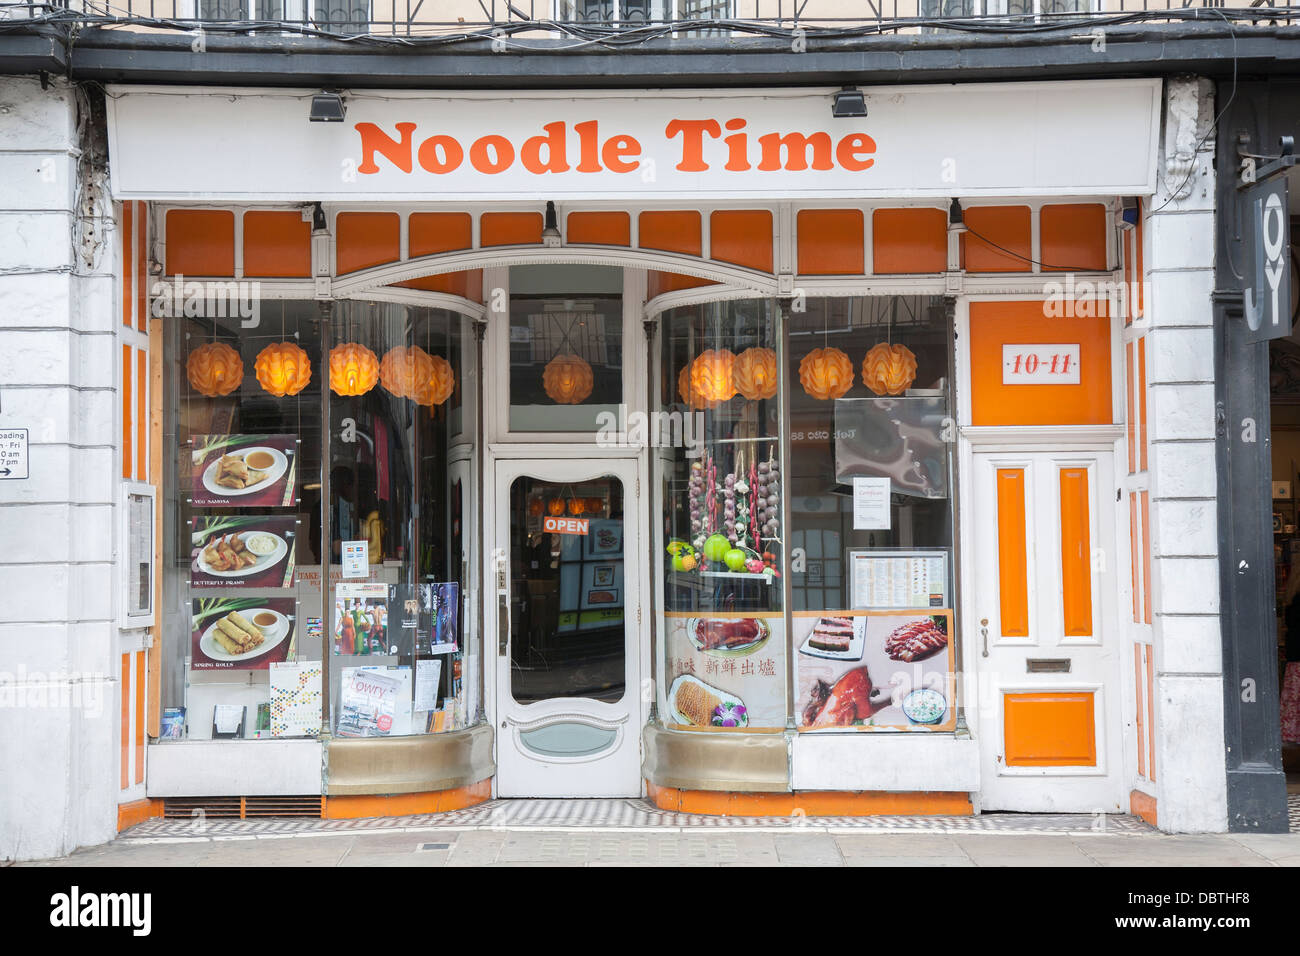 noodle time restaurant greenwich london england uk stock photo royalty free image 58932924. Black Bedroom Furniture Sets. Home Design Ideas